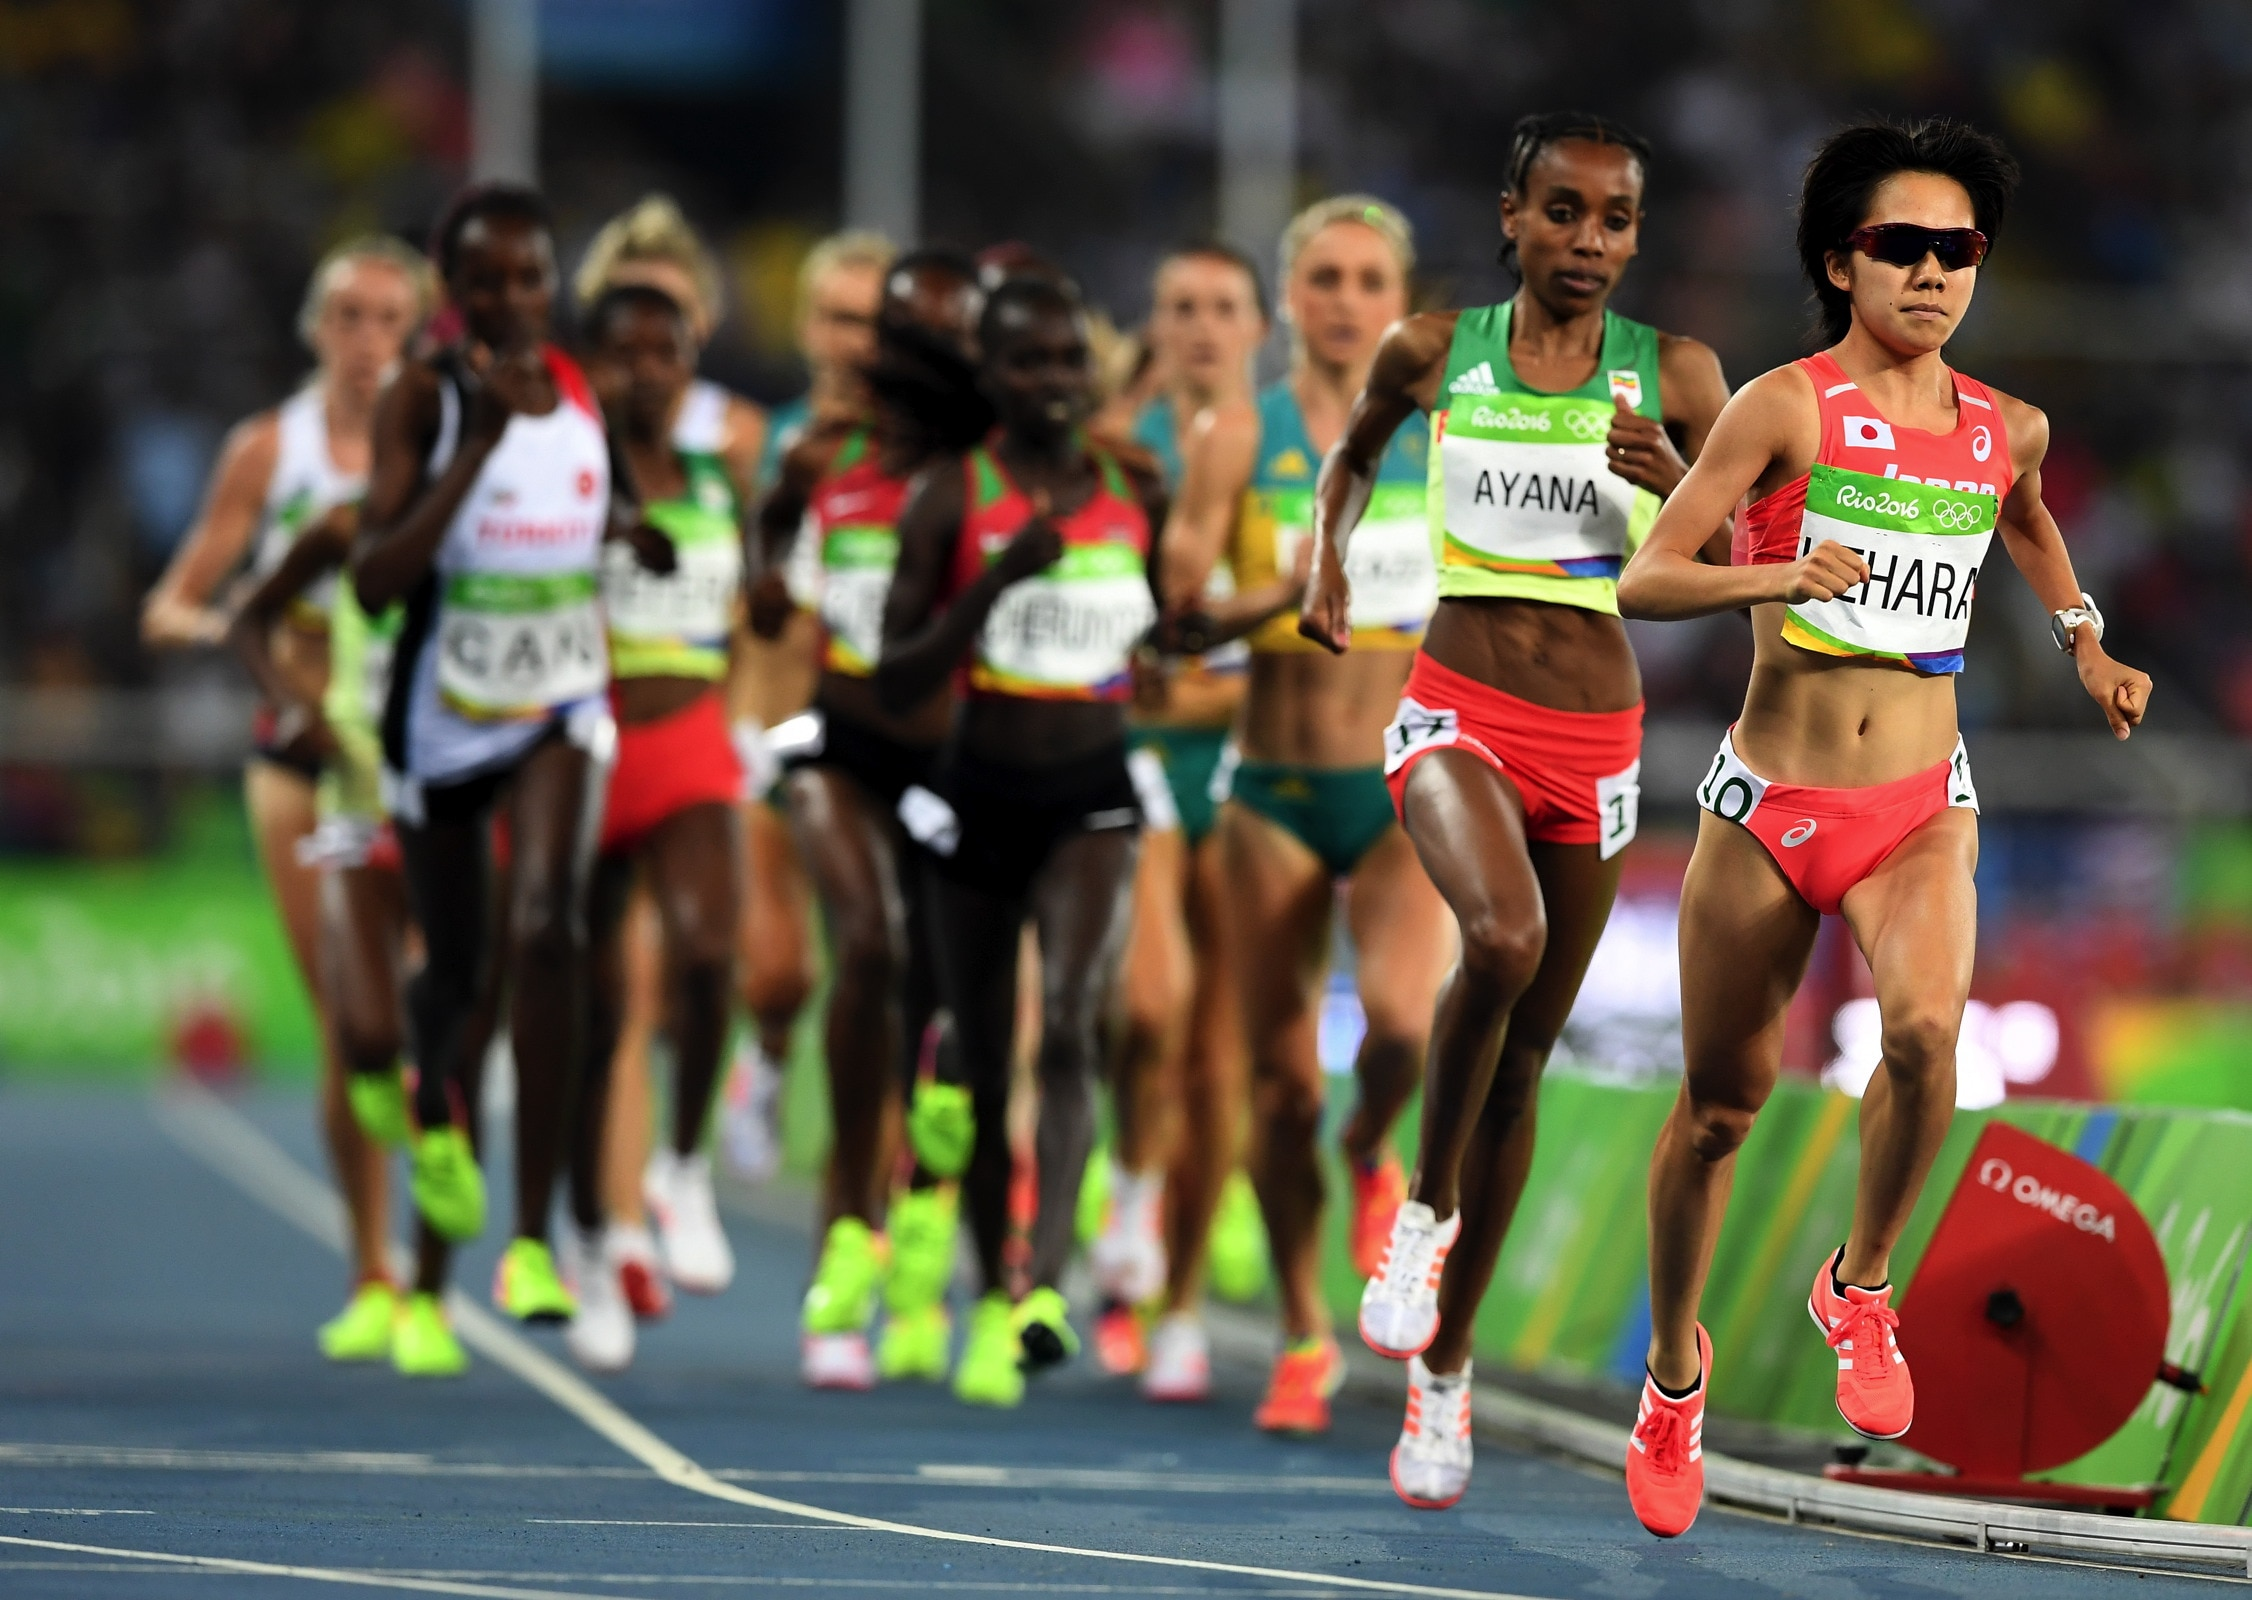 Athletics - 5000m Women